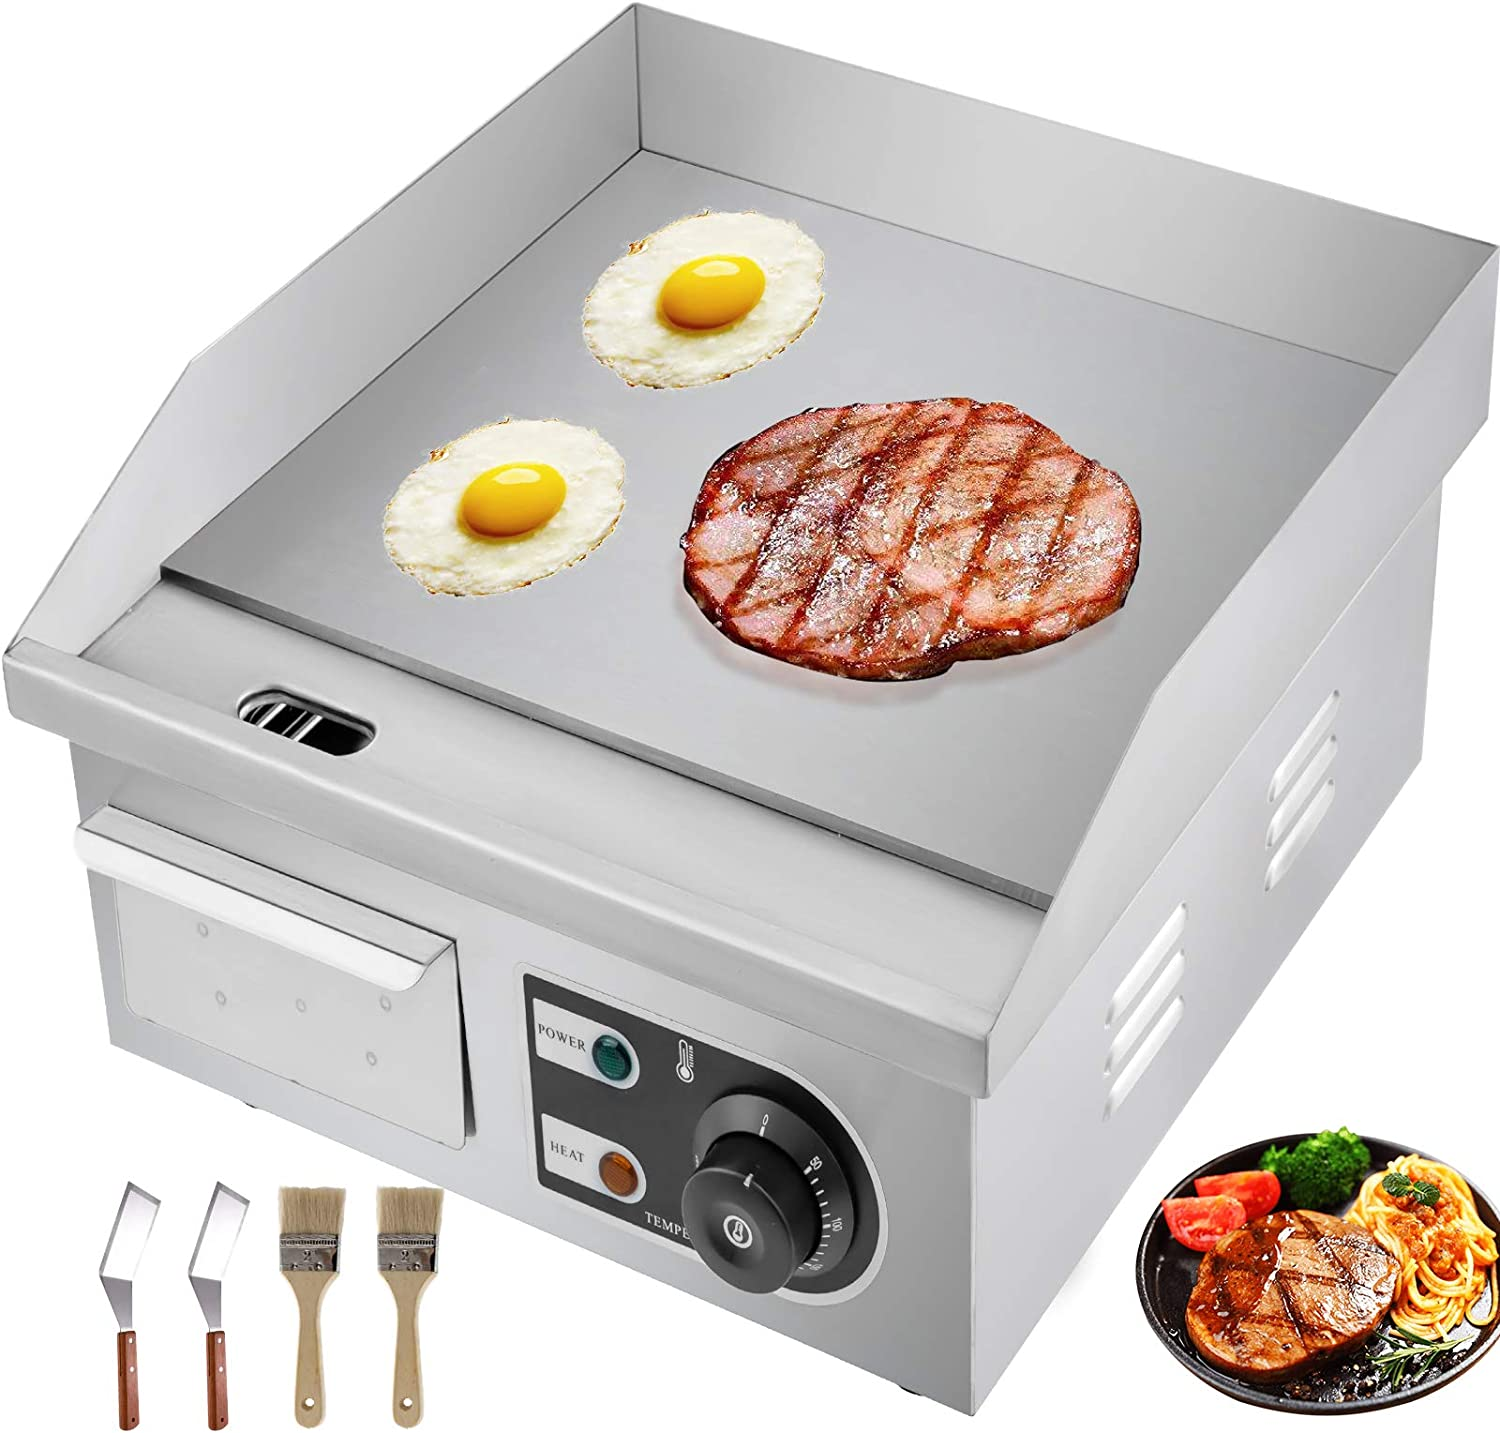 """VBENLEM 14"""" Electric Countertop Griddle Grill 110V 1500W Non-Stick Commercial Restaurant Gril Stainless Steel Flat Top Grill with Adjustable Temperature Control 122°F-572°F"""